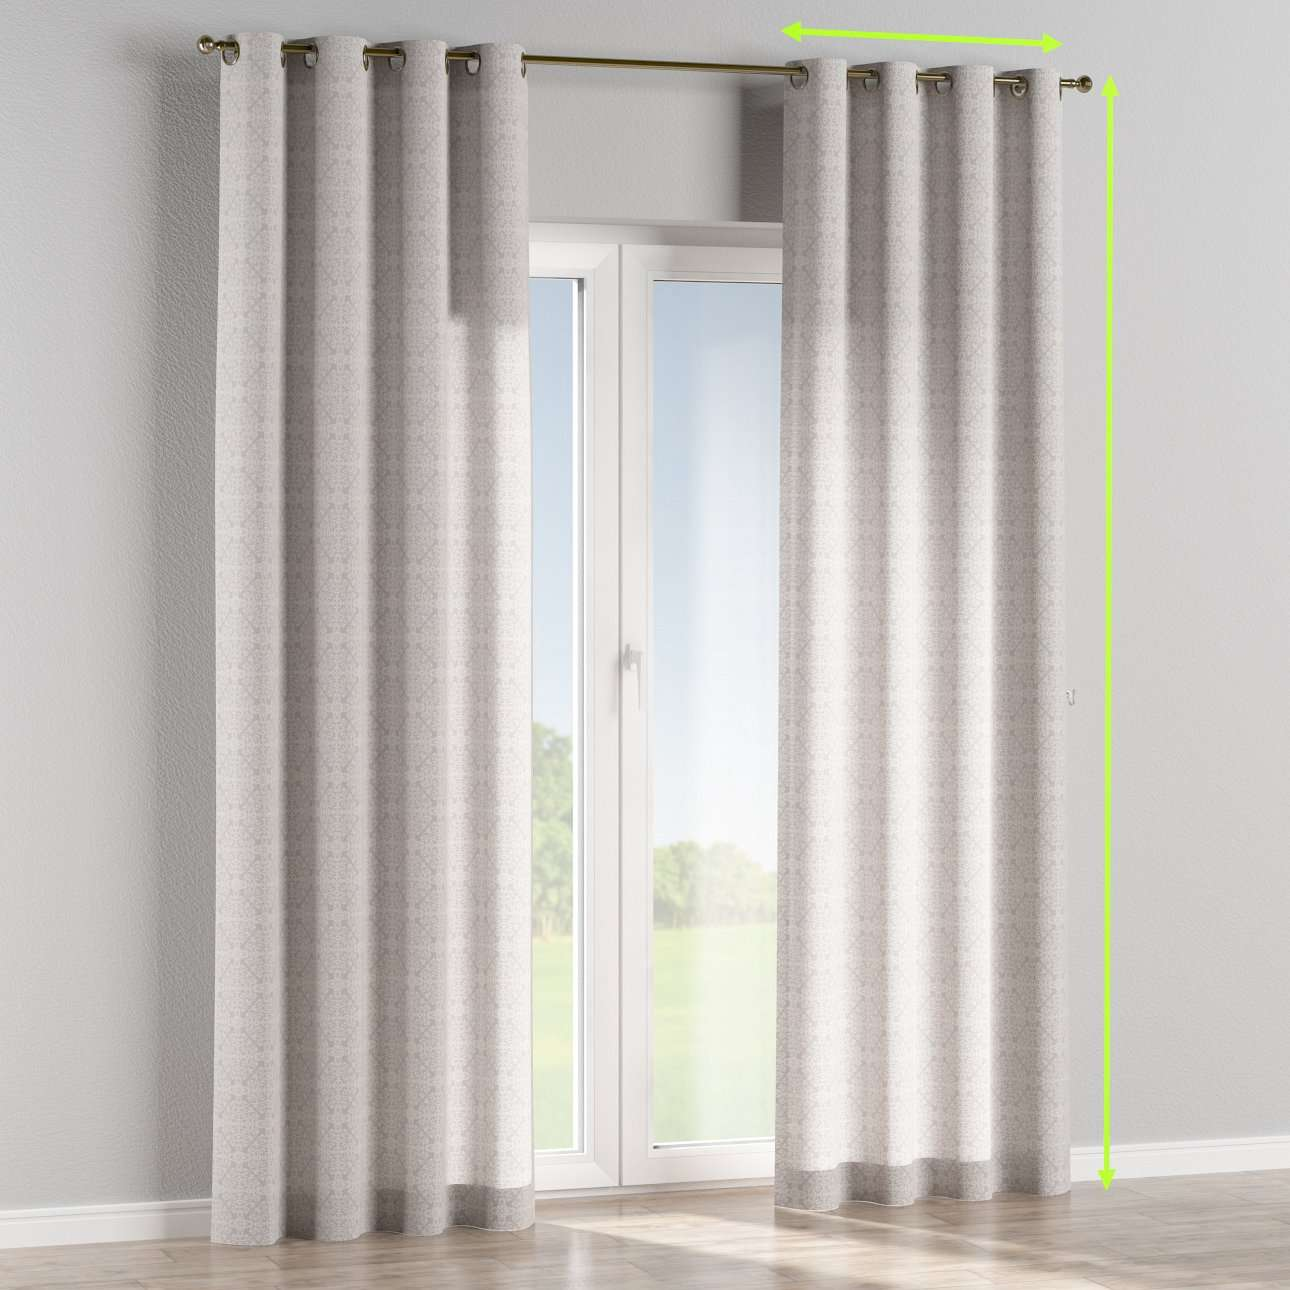 Eyelet lined curtains in collection Flowers, fabric: 140-38